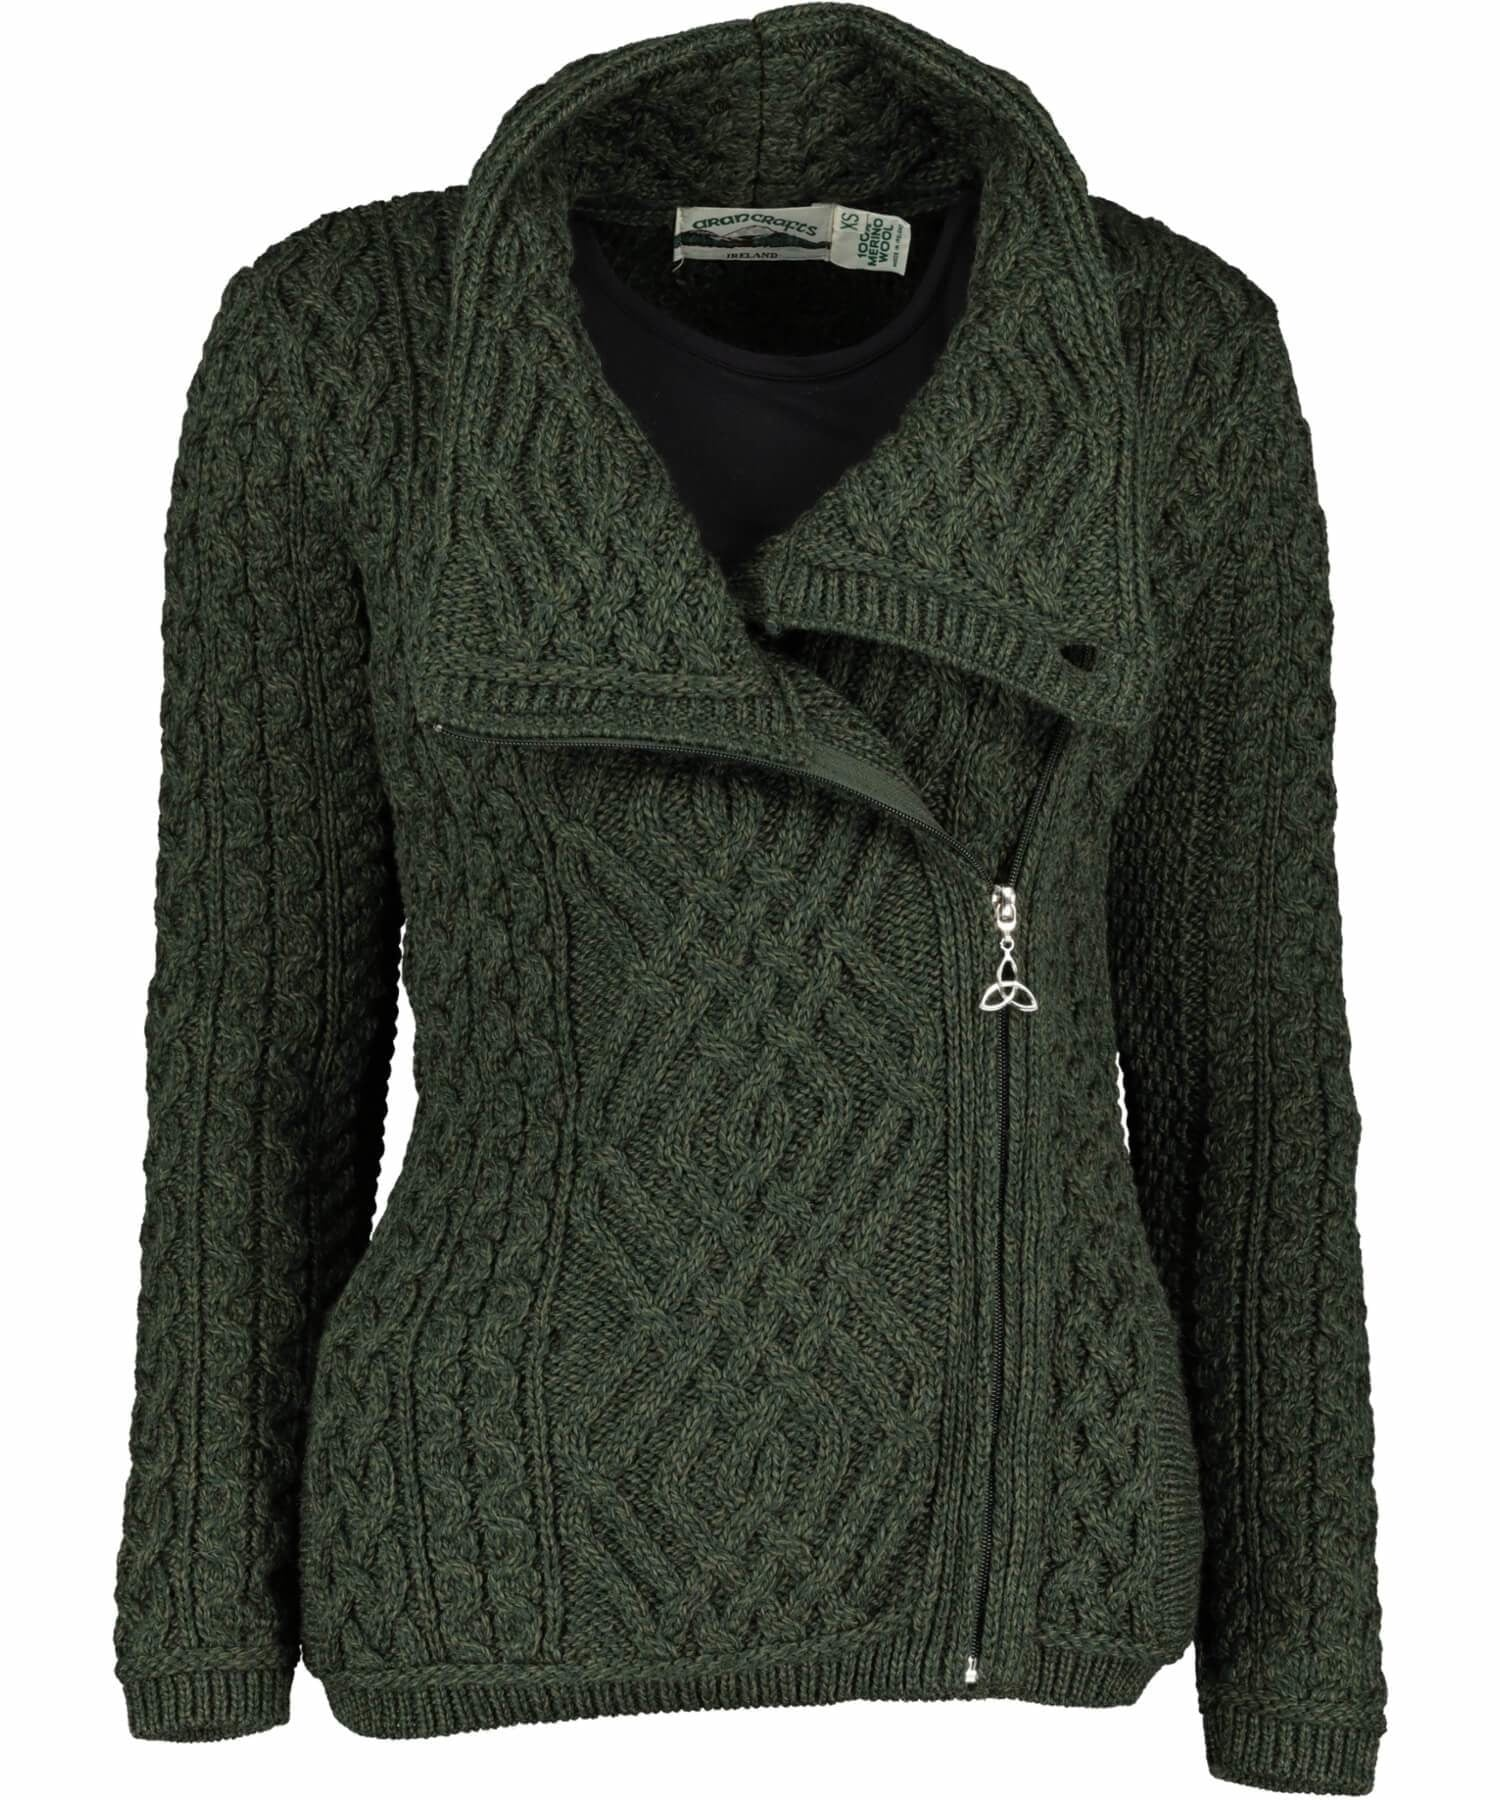 Shannon Side Zip - Army Green - [Aran Crafts] - Ladies Sweaters & Cardigans - Irish Gifts